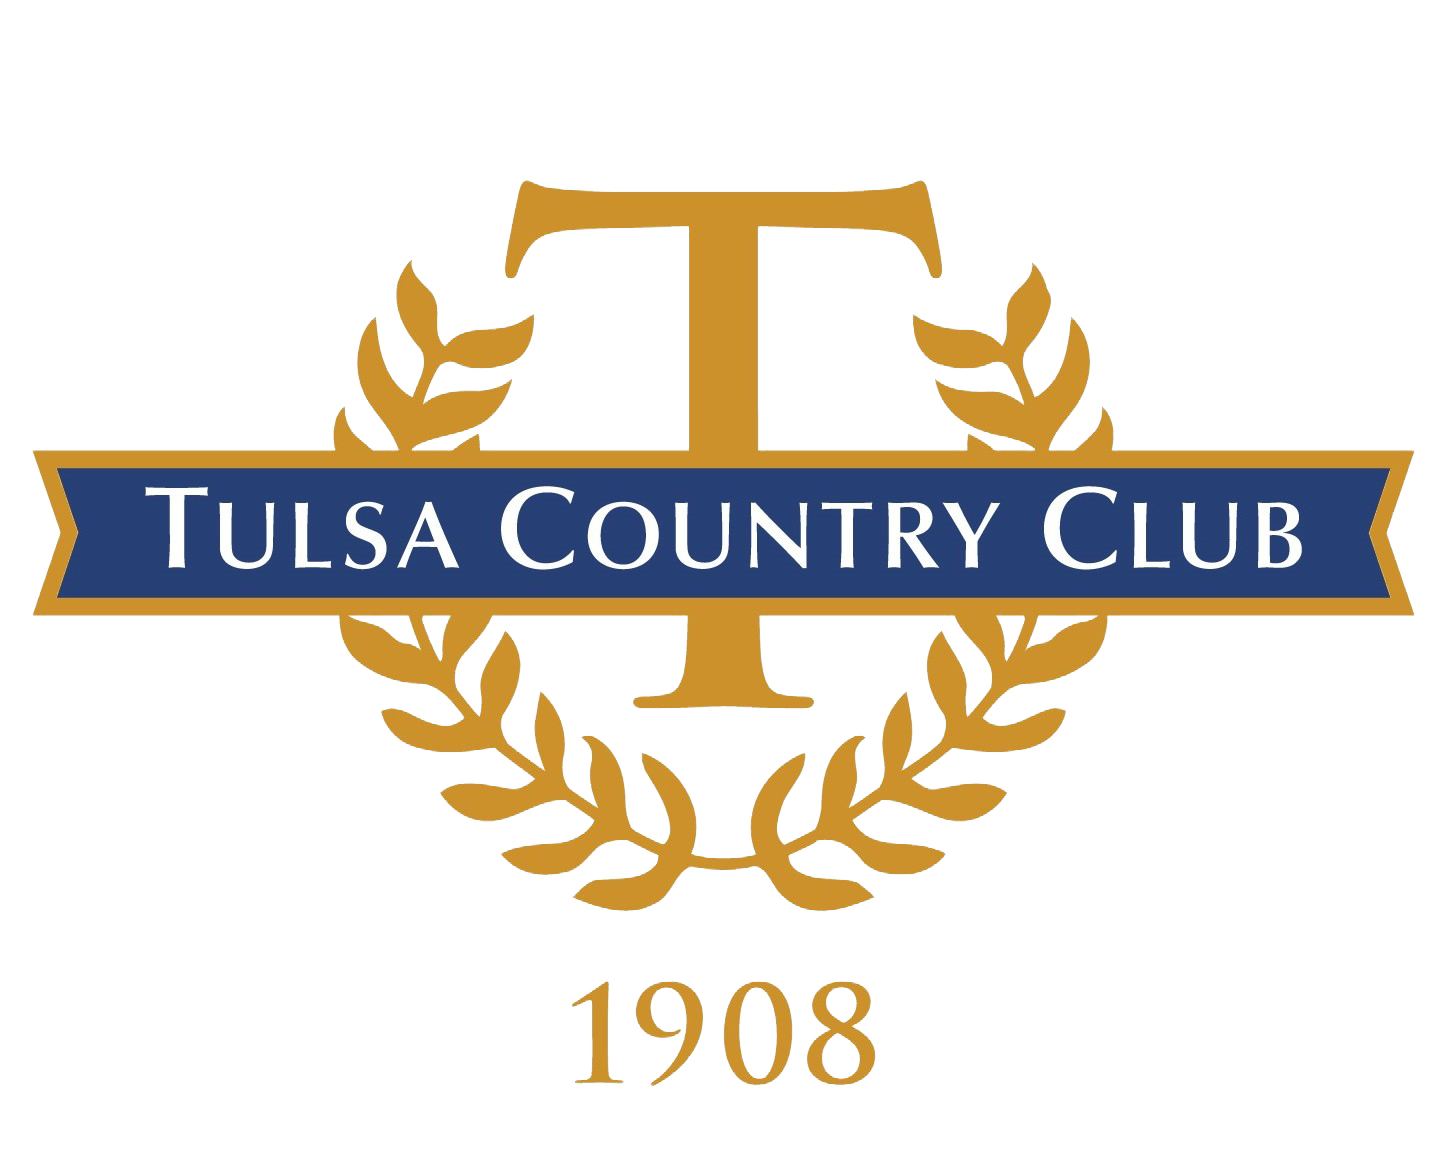 Country club png. Home tulsa one for